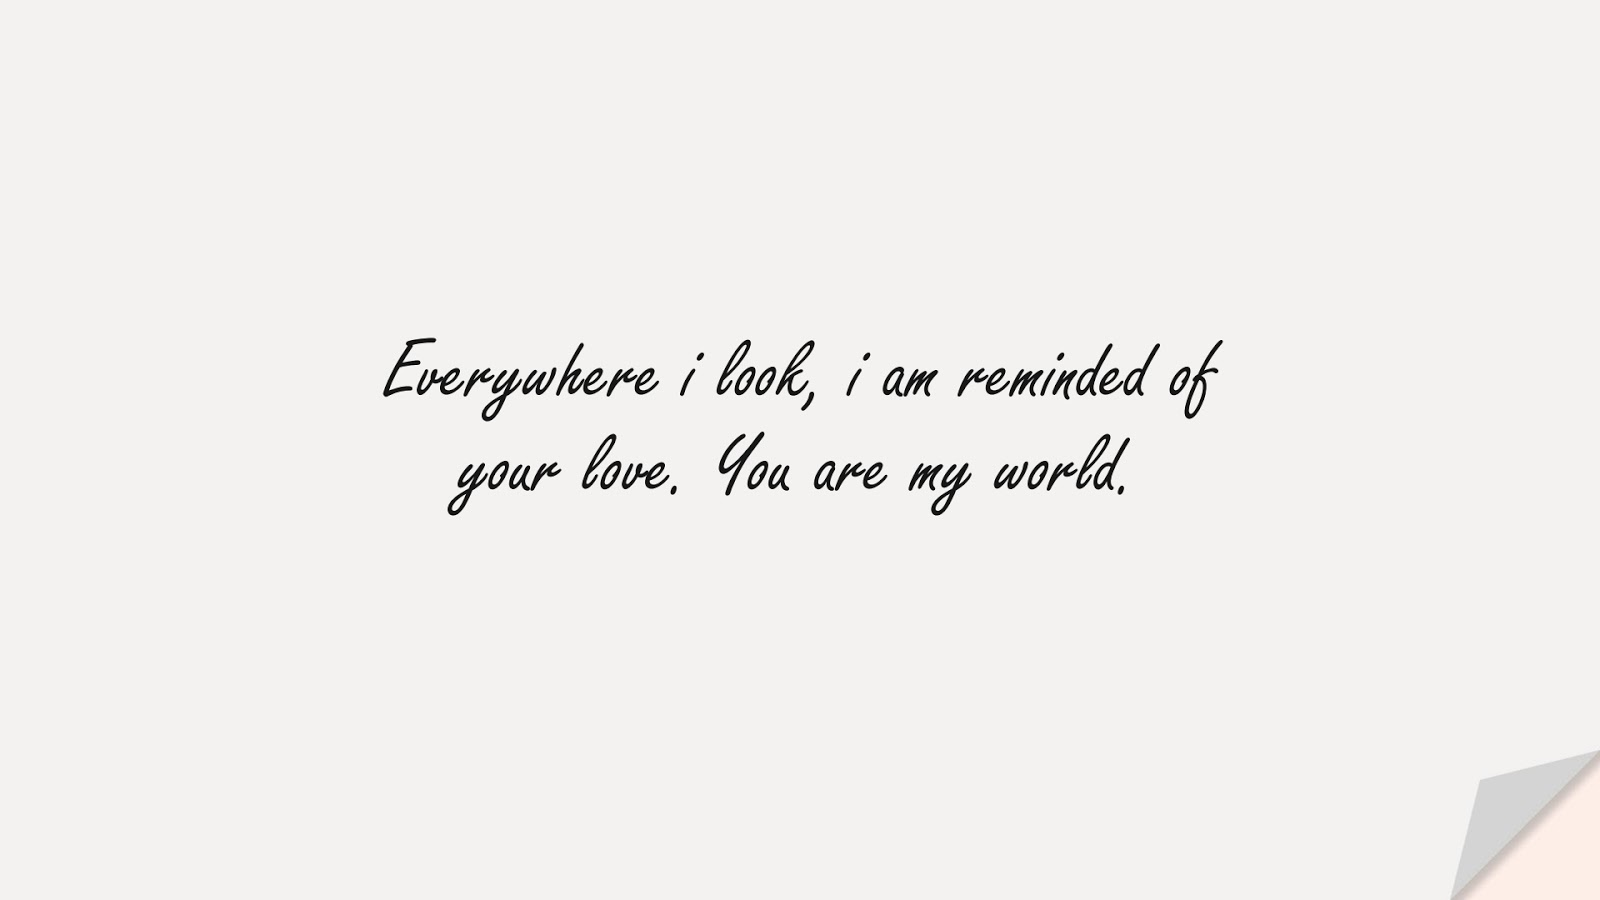 Everywhere i look, i am reminded of your love. You are my world.FALSE